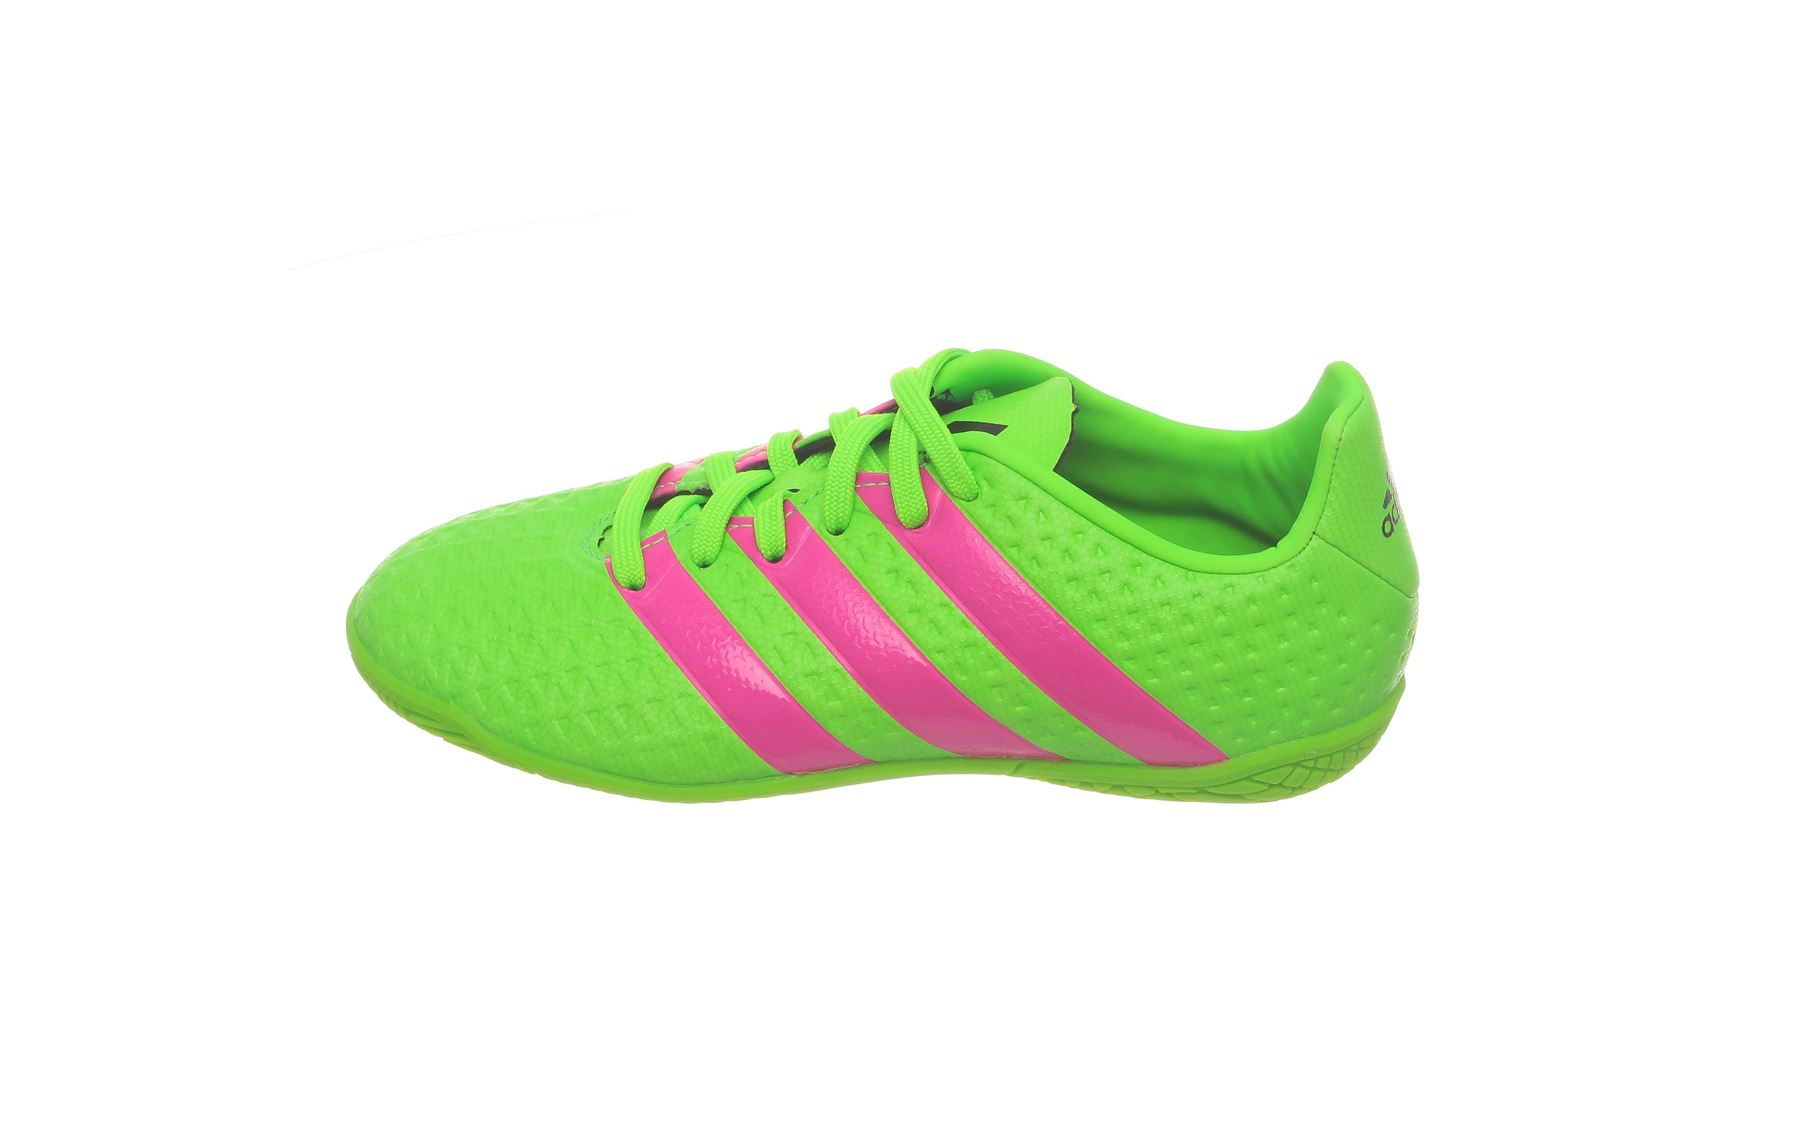 Details about Futsal shoes adidas copa 19.4 Turf JR Boy Futsal Neon Yellow f35457 show original title